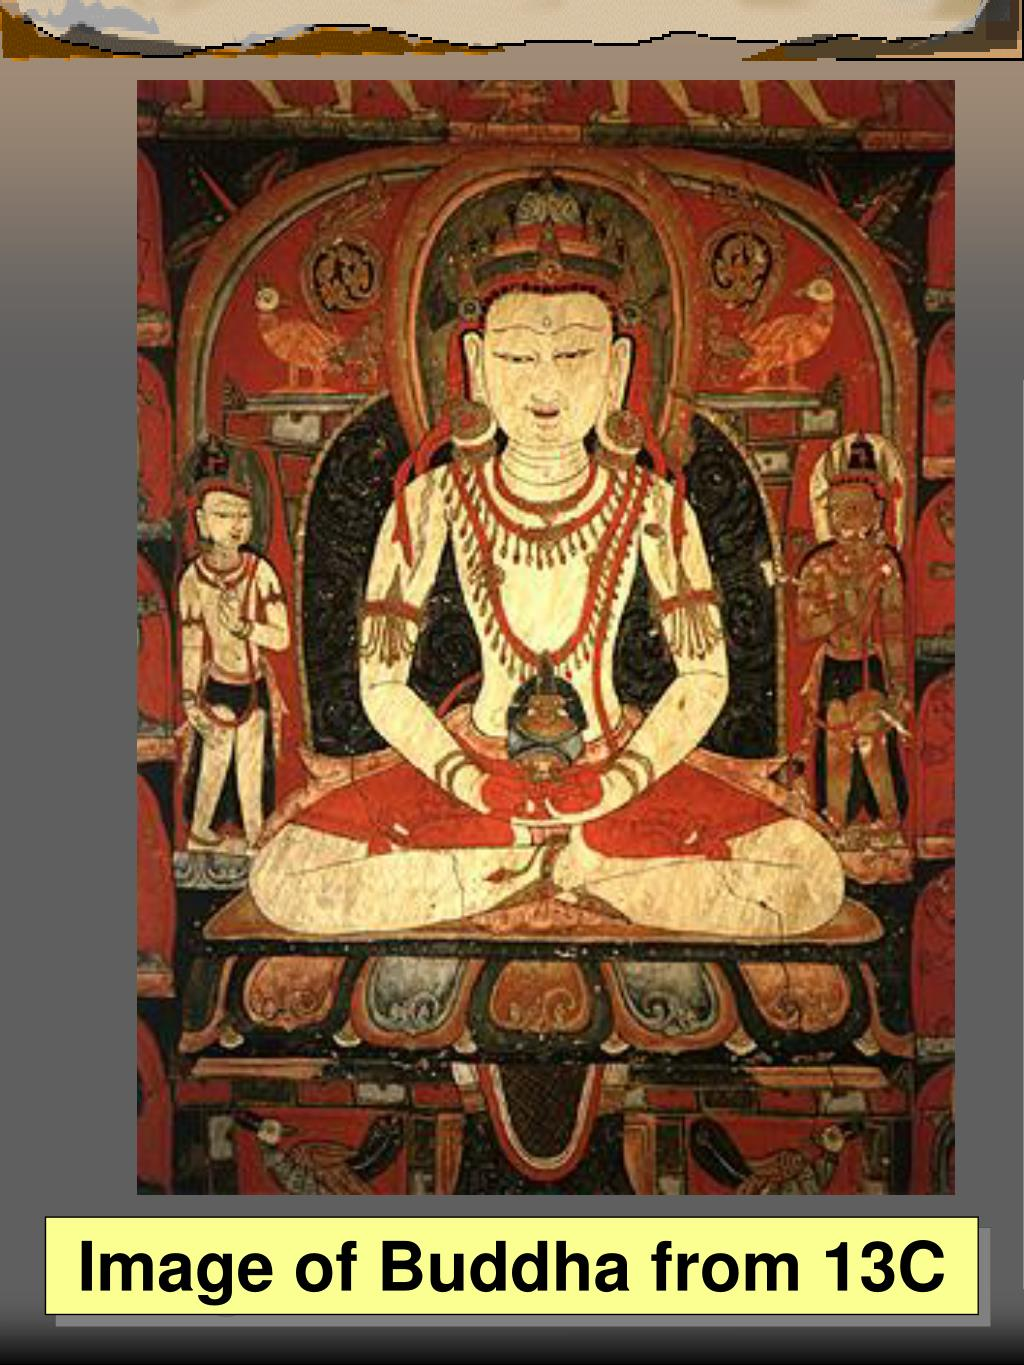 Image of Buddha from 13C